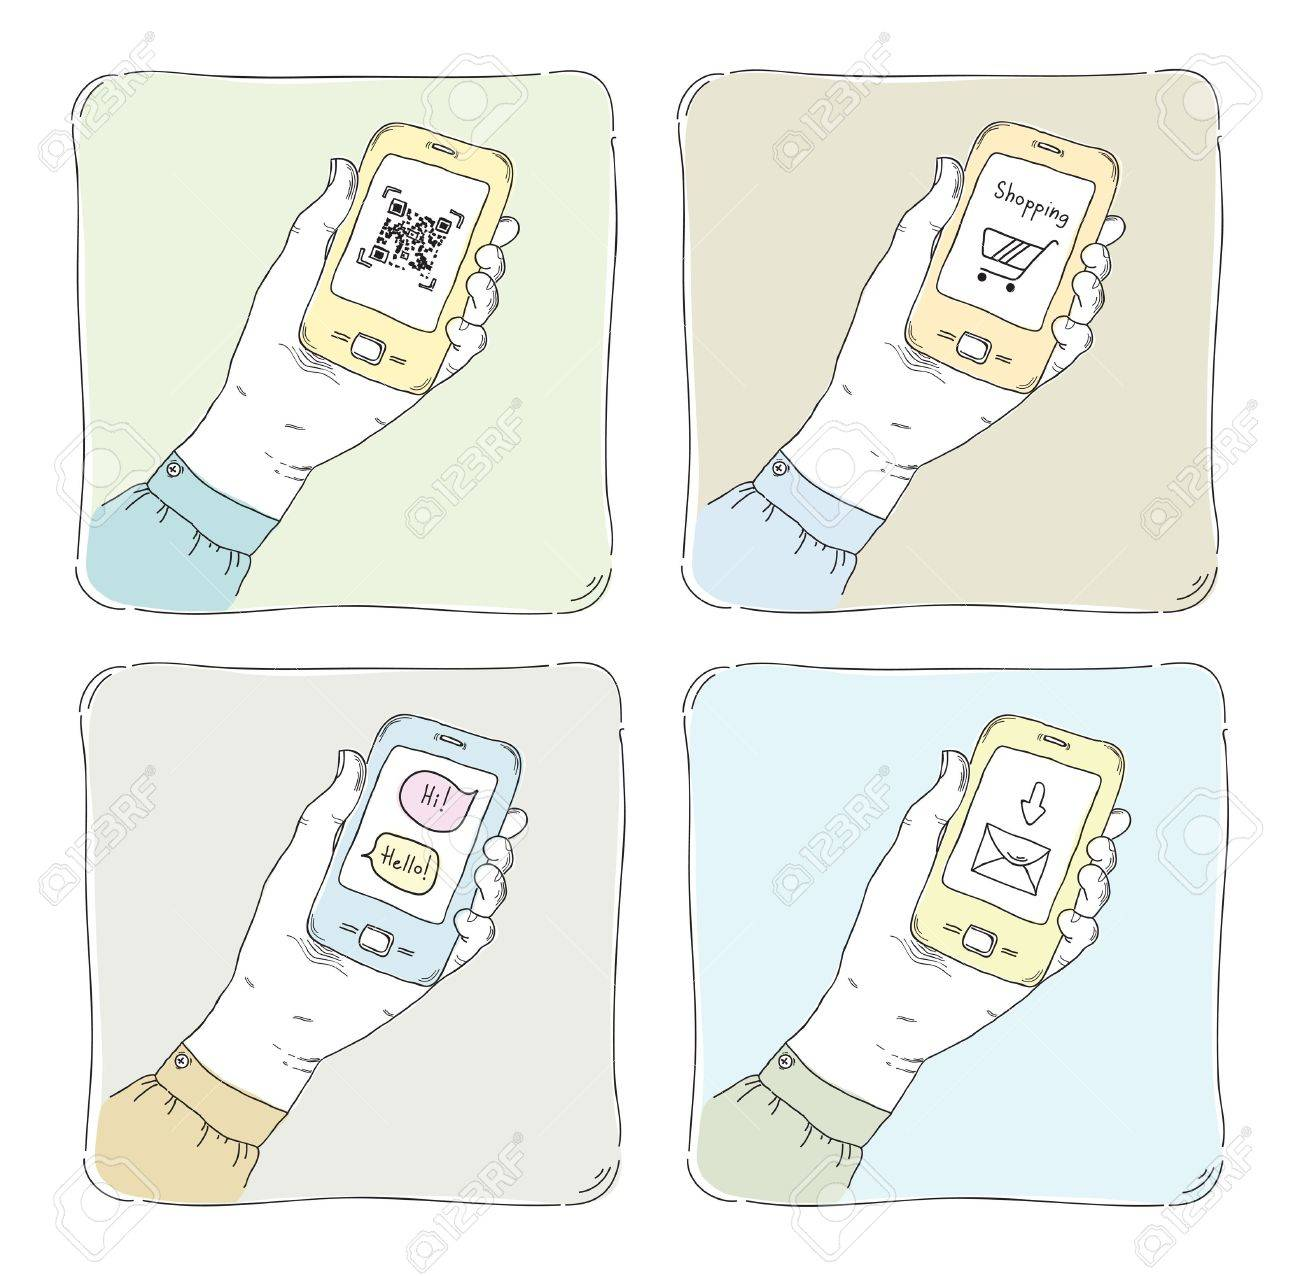 Drawn  illustrations of using smartphone in typical situation, QR code scanning, internet shopping, sending messages and mail communication  Isolated on white Stock Vector - 18793764